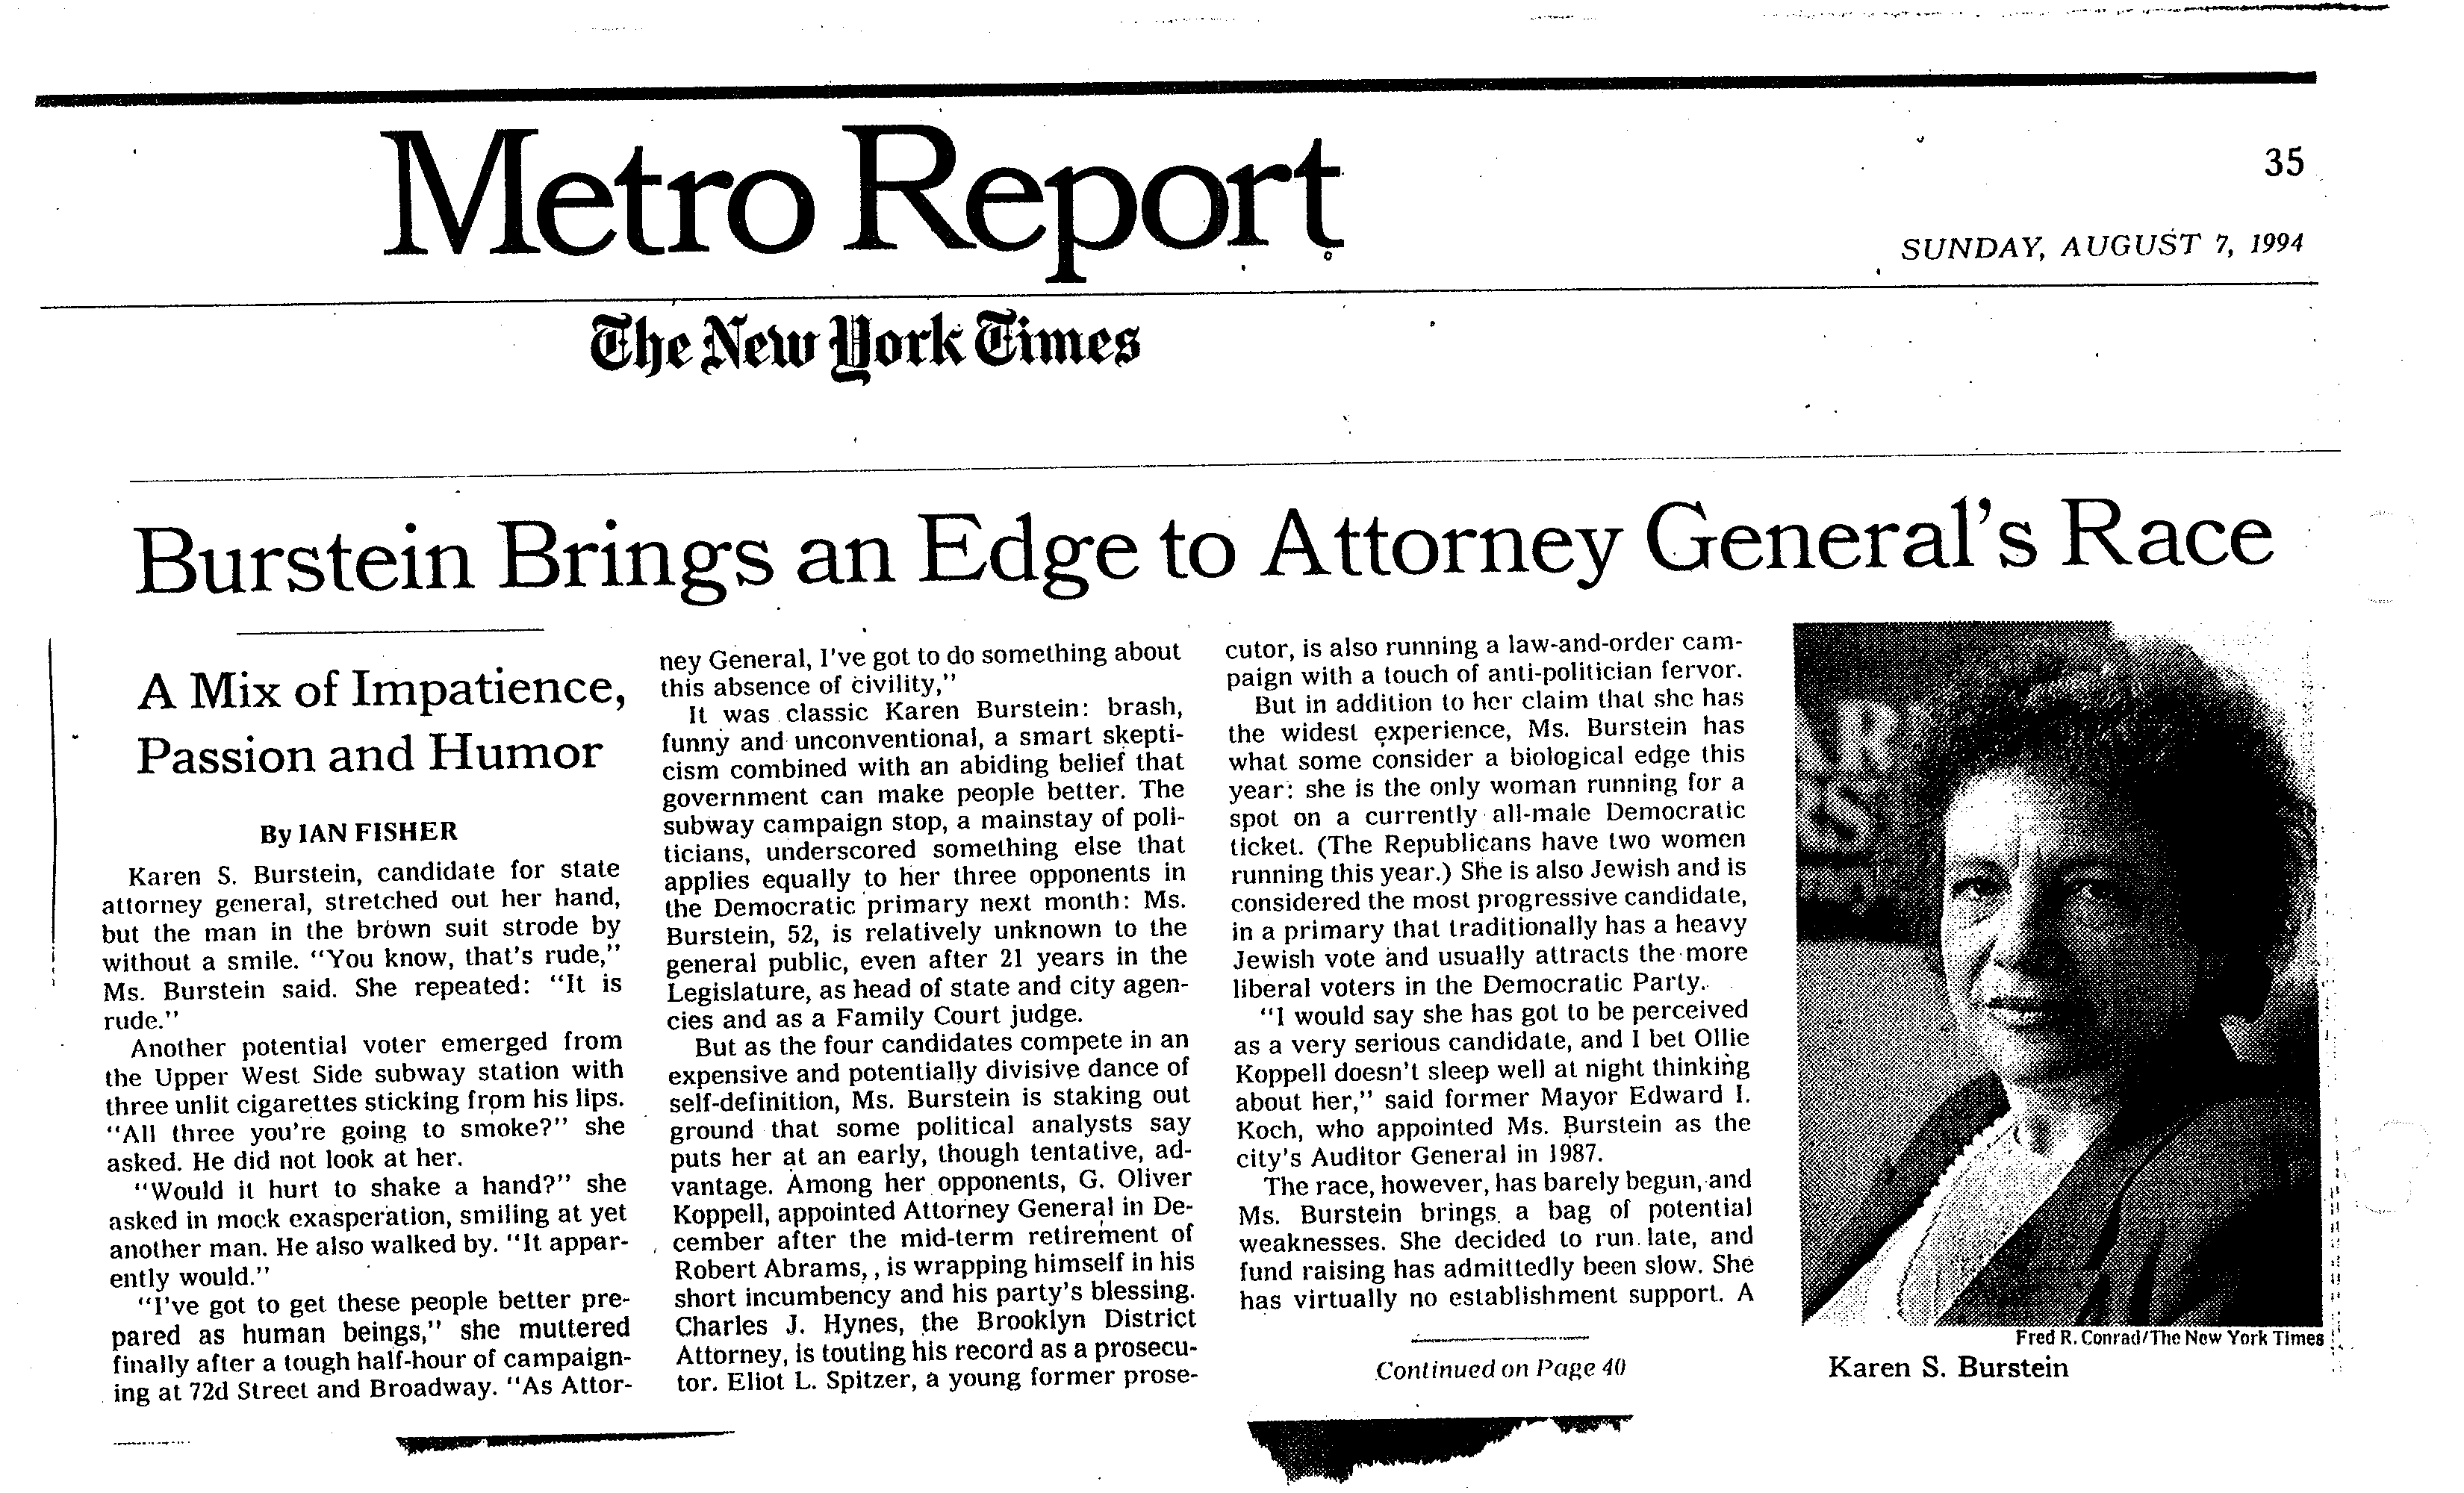 Karen Burstein's campaign was featured in the August, 7, 1994 issue of the New York Times.